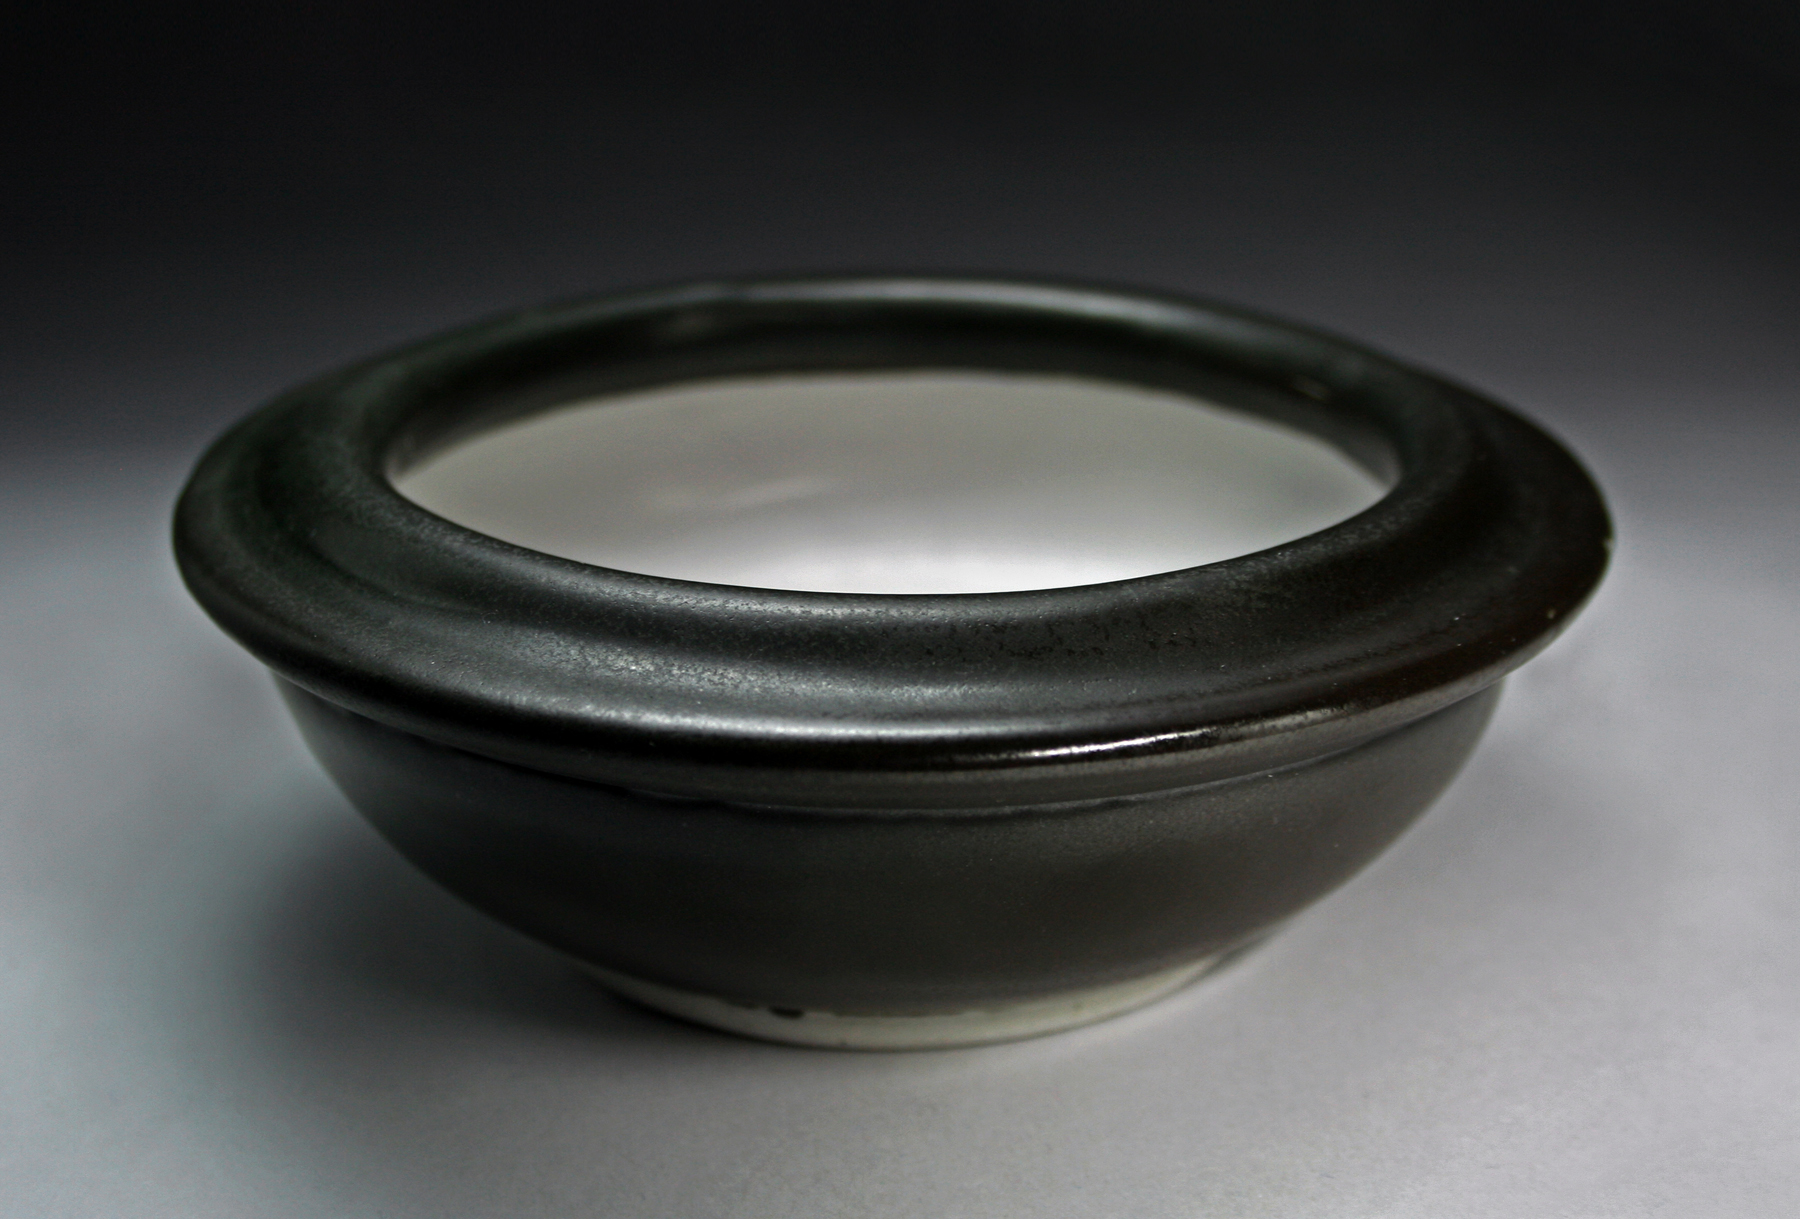 Double lipped bowl